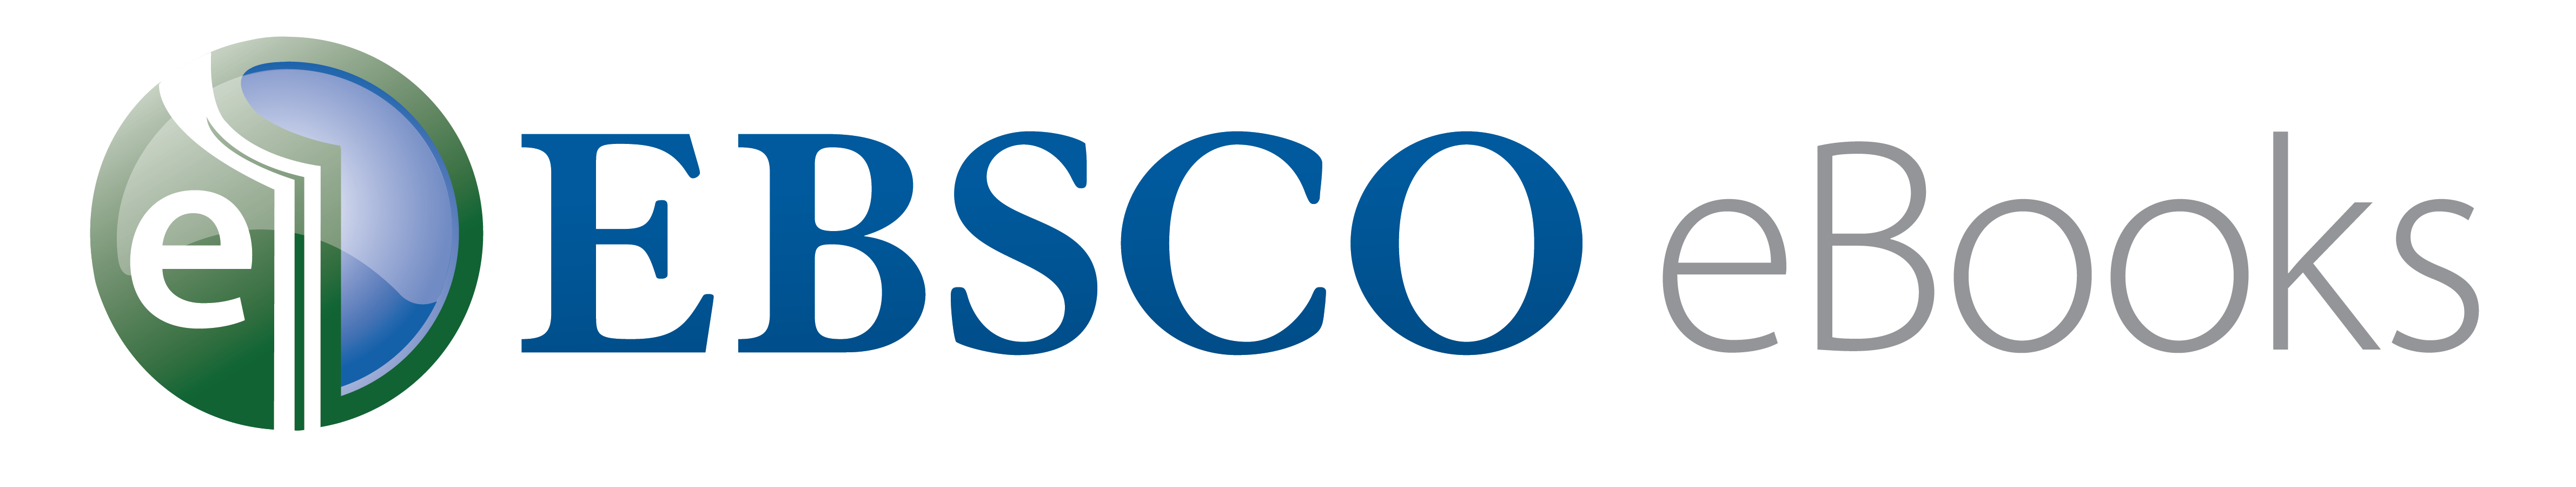 ebsco ebook logo and link